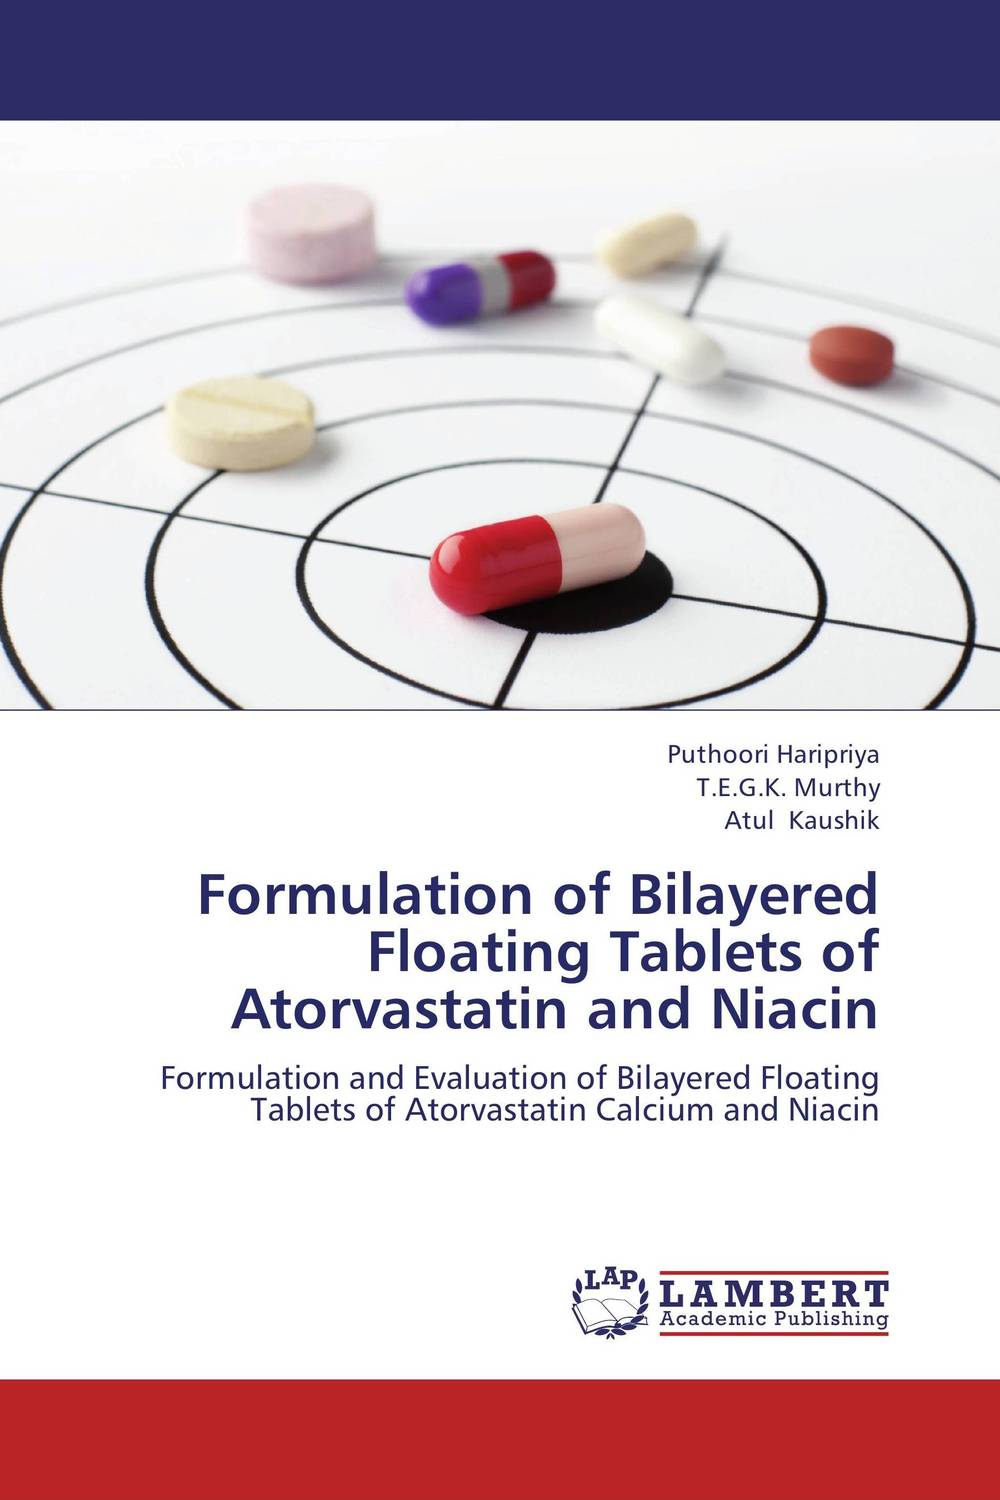 Formulation of Bilayered Floating Tablets of Atorvastatin and Niacin rosuvastatin versus a combination of atorvastatin and ezetimibe